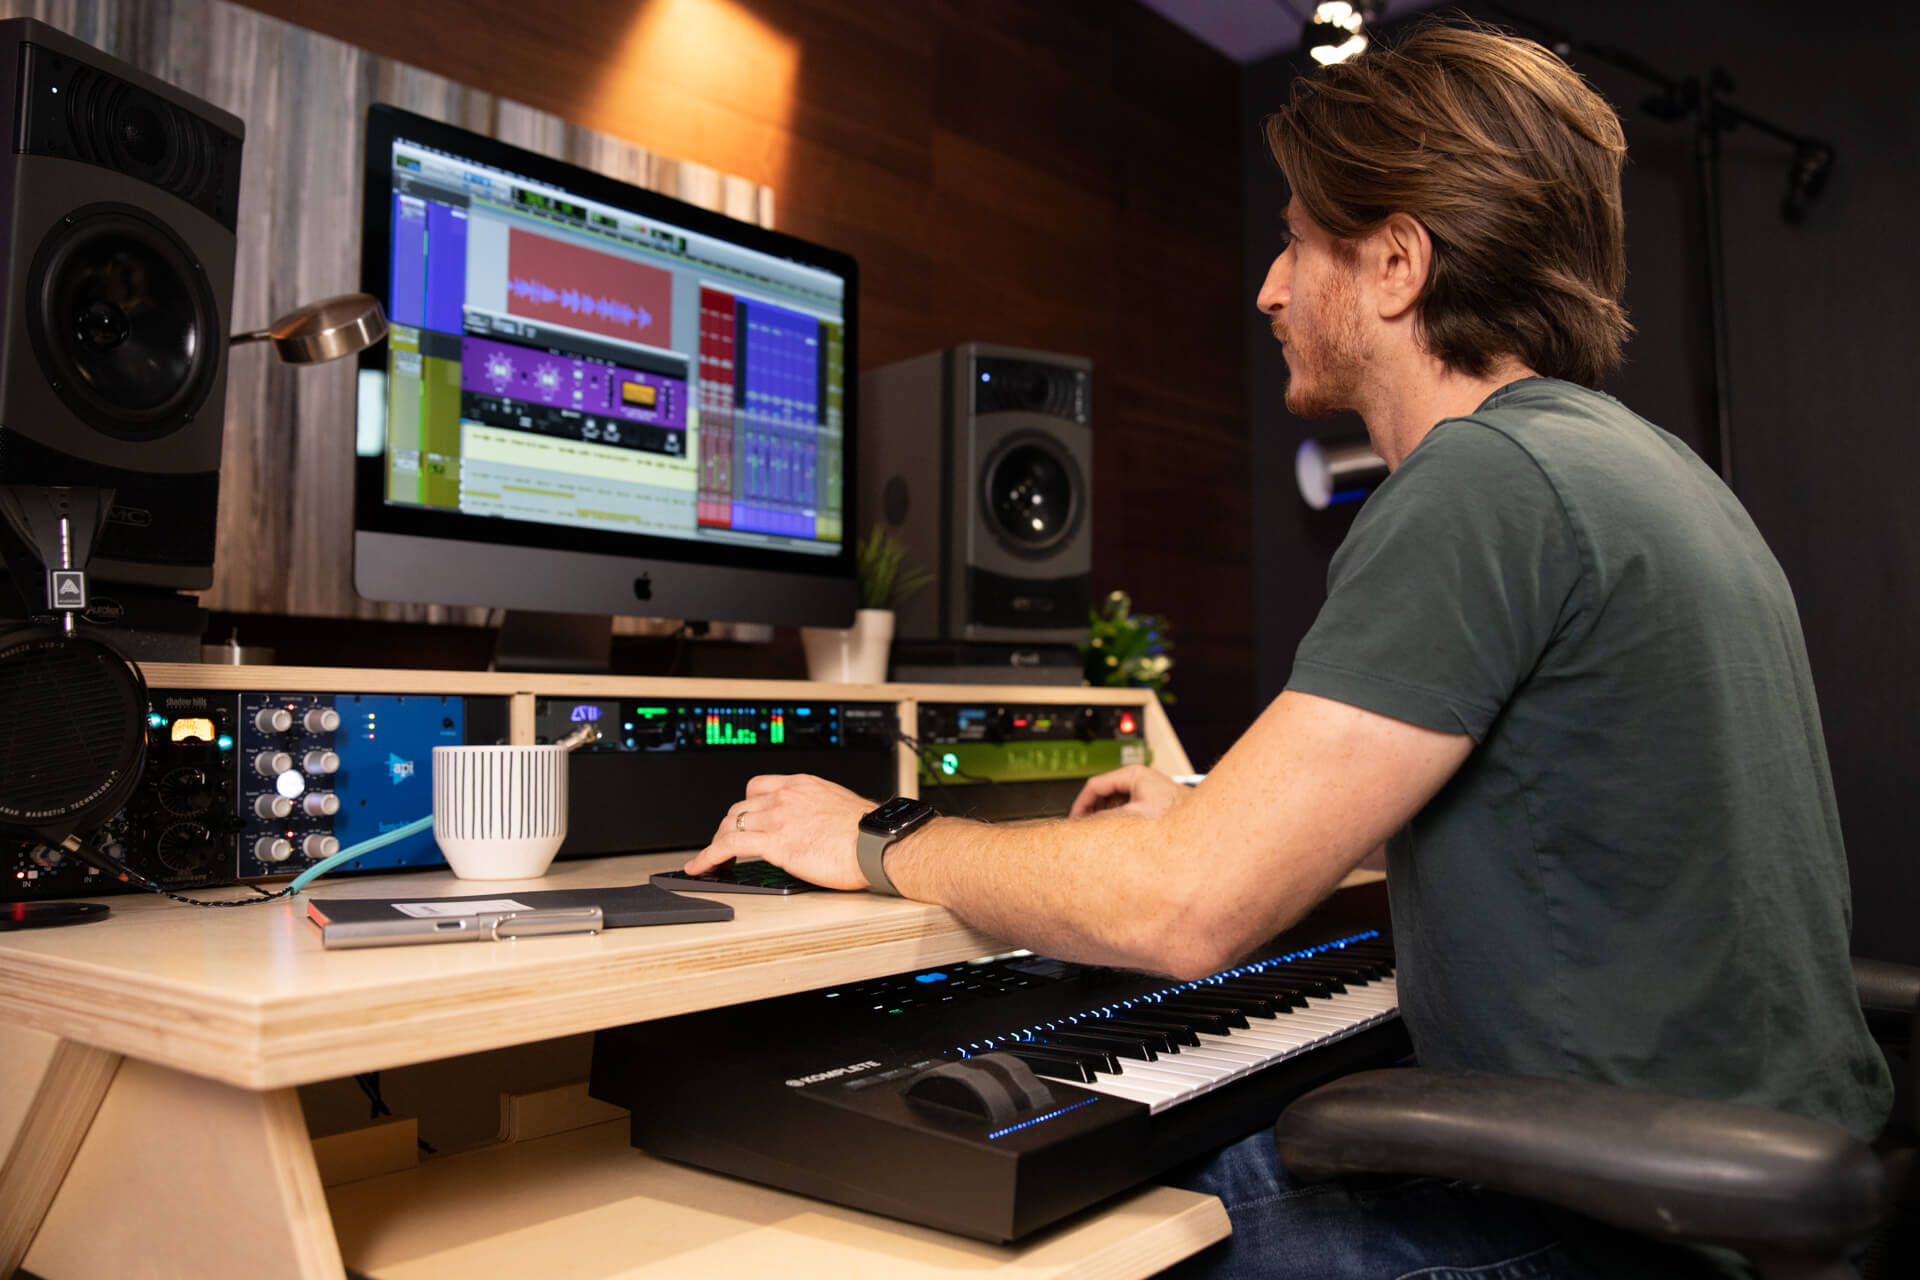 Avid Carbon pro tools prezzo recensione opinions review luca pilla audiofader